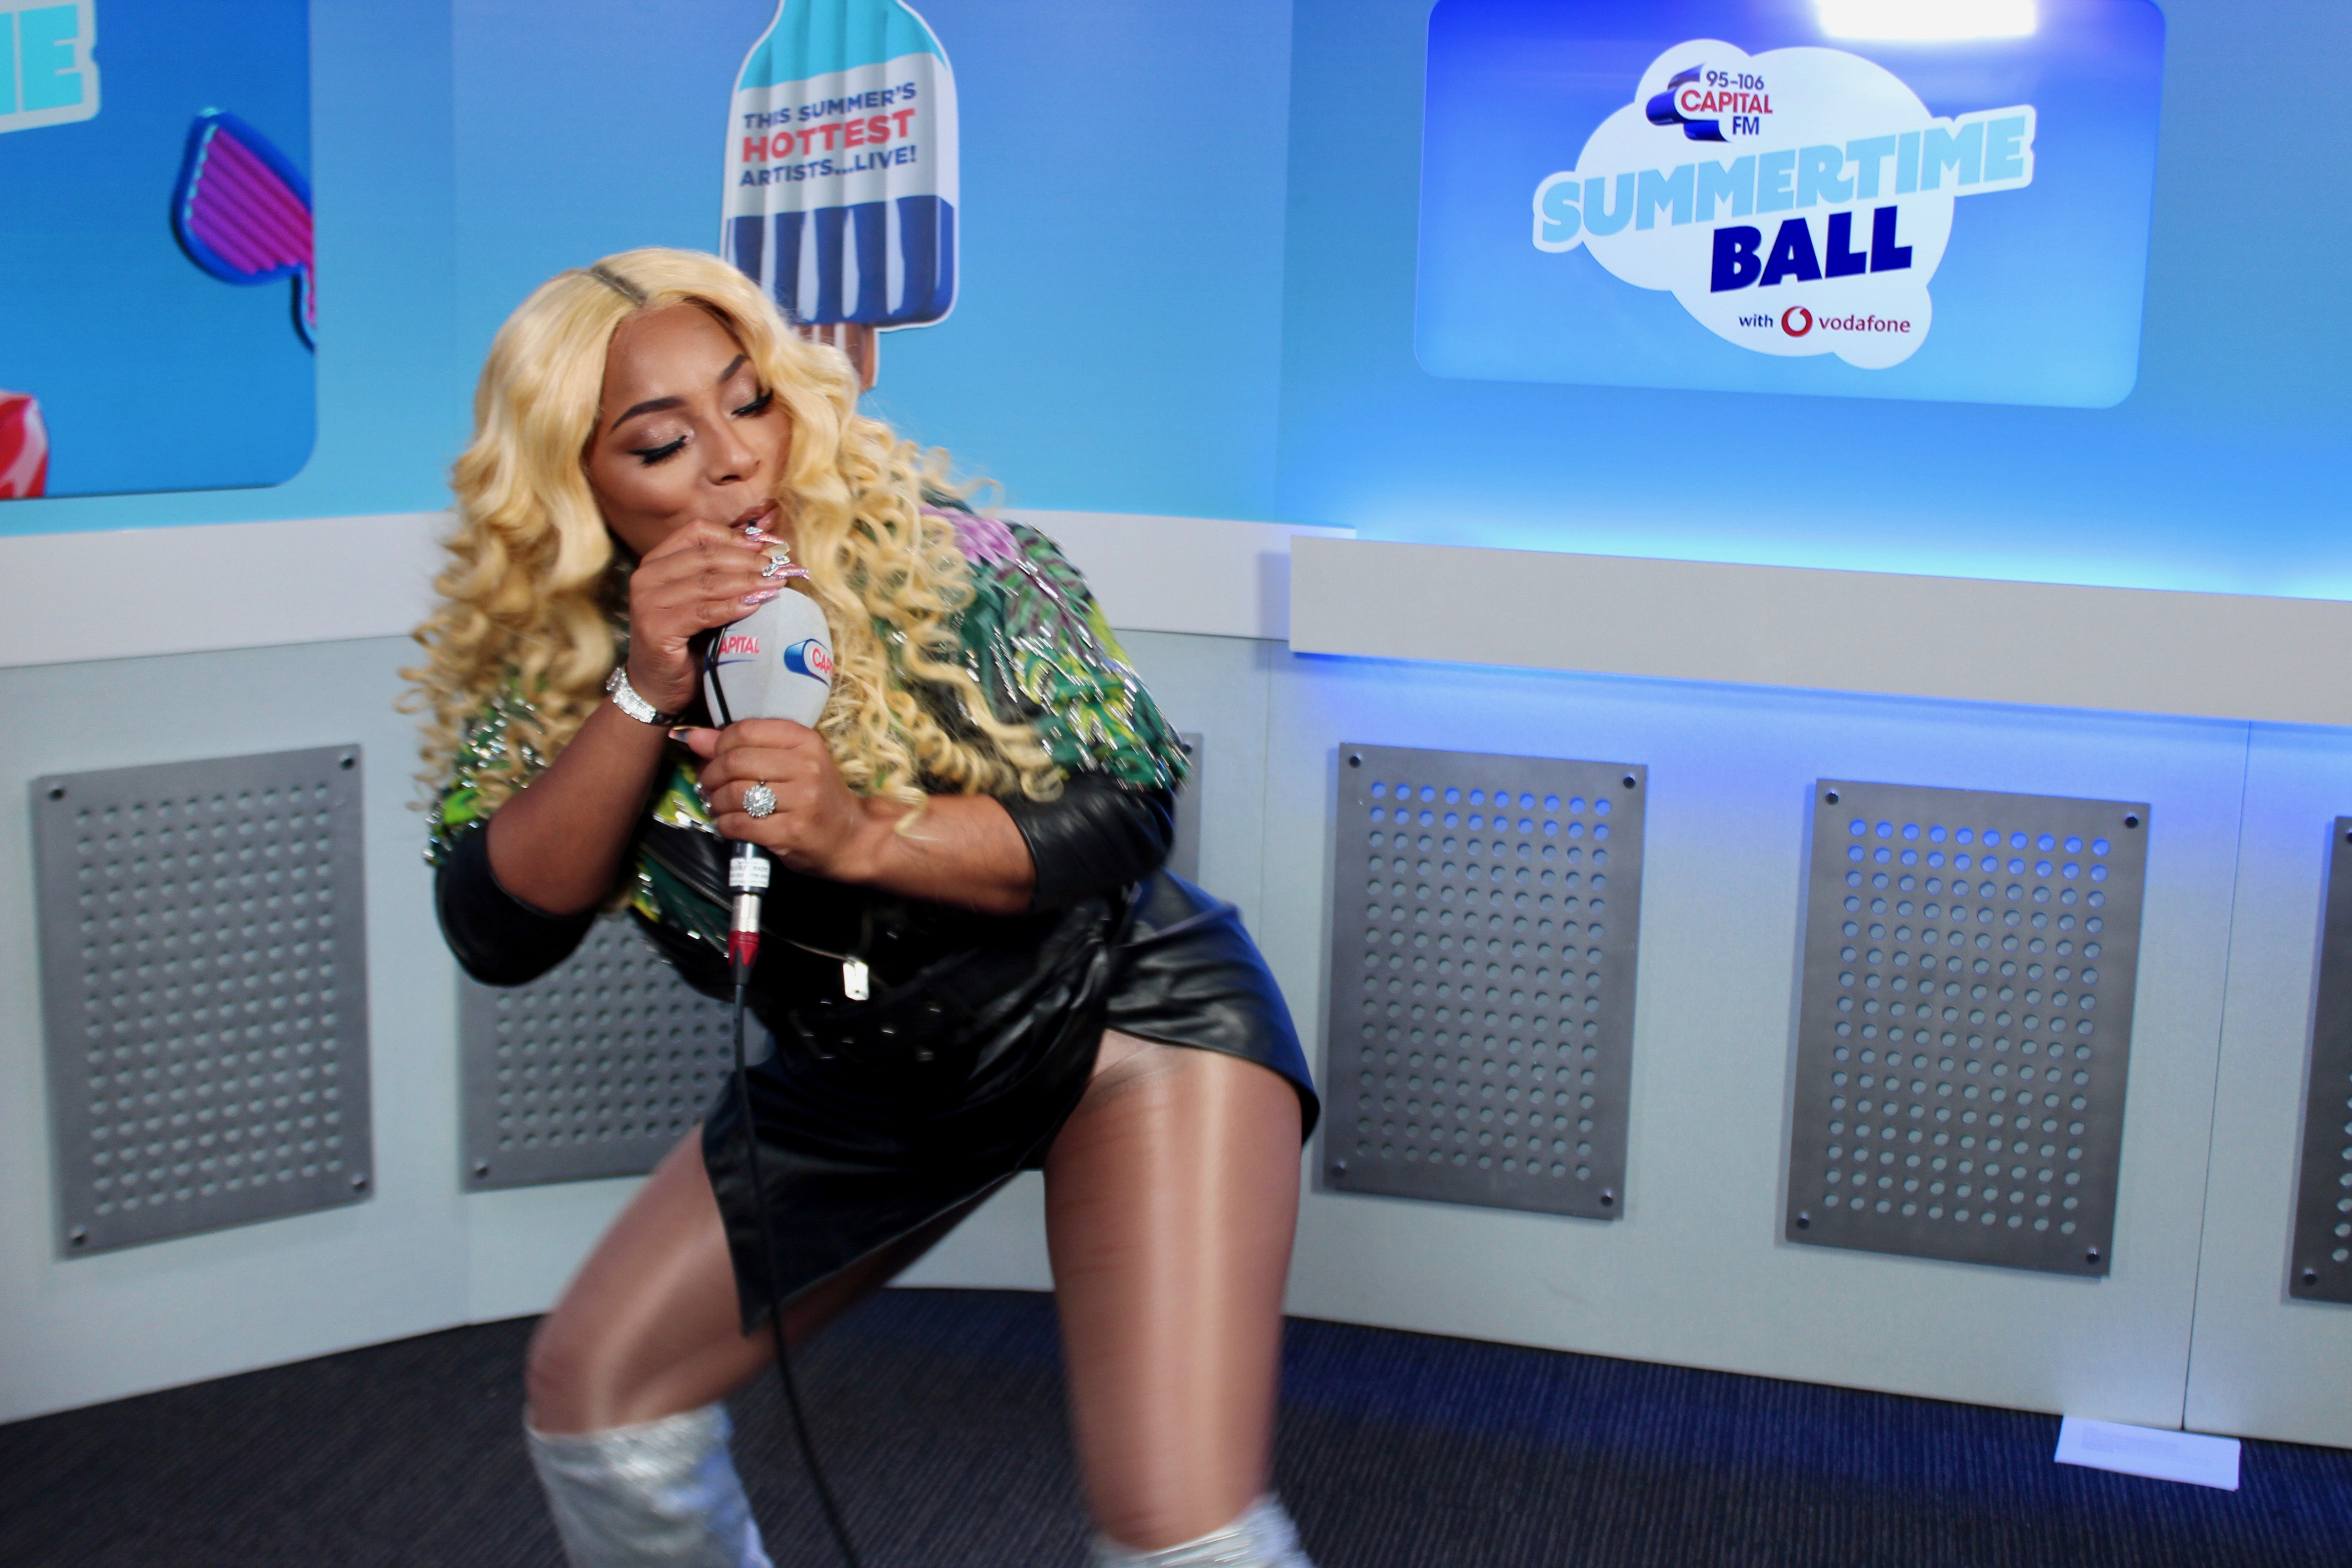 Stefflon Don Roman Kemp Summertime Ball 2018